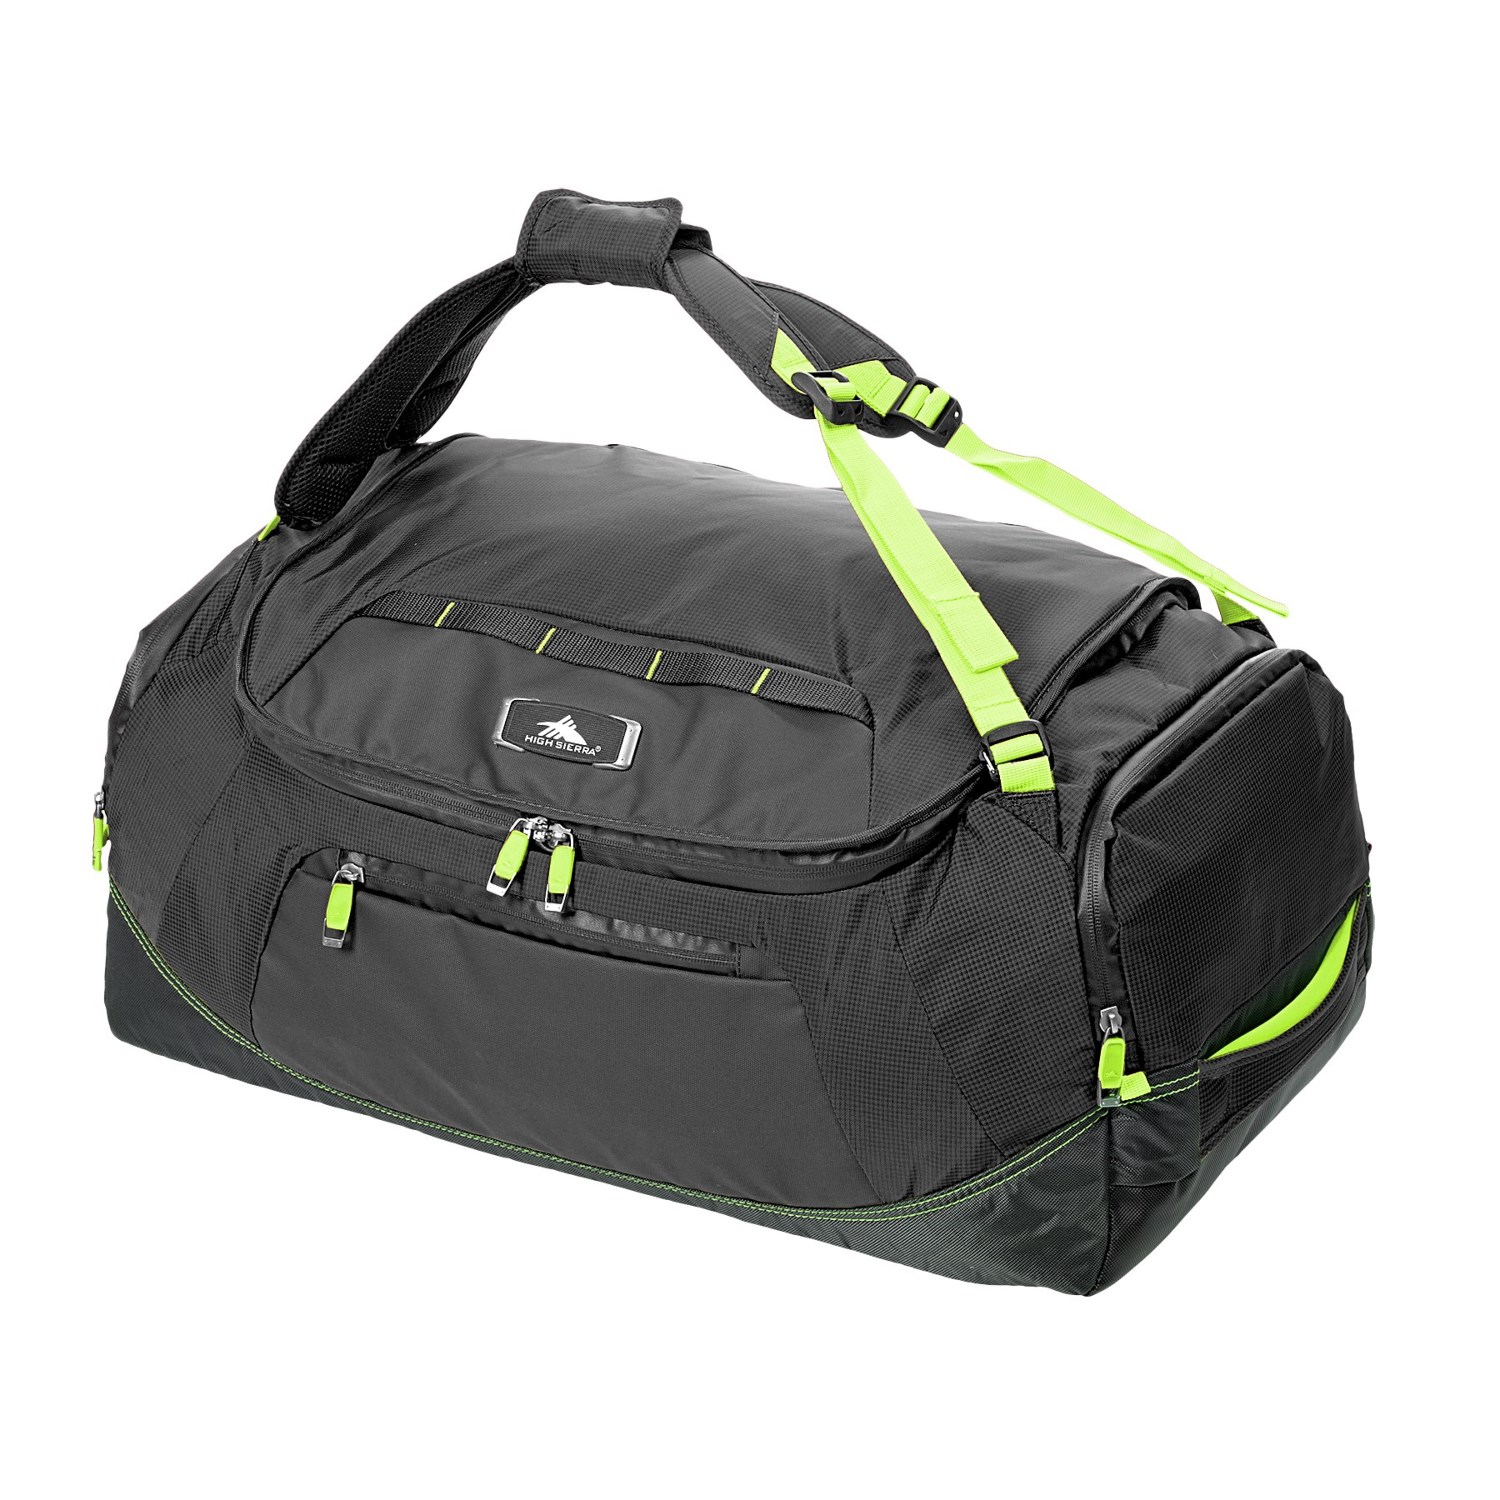 High Sierra At8 17 Laptop Convertible Backpack- Fenix Toulouse Handball 0493f682b89f9